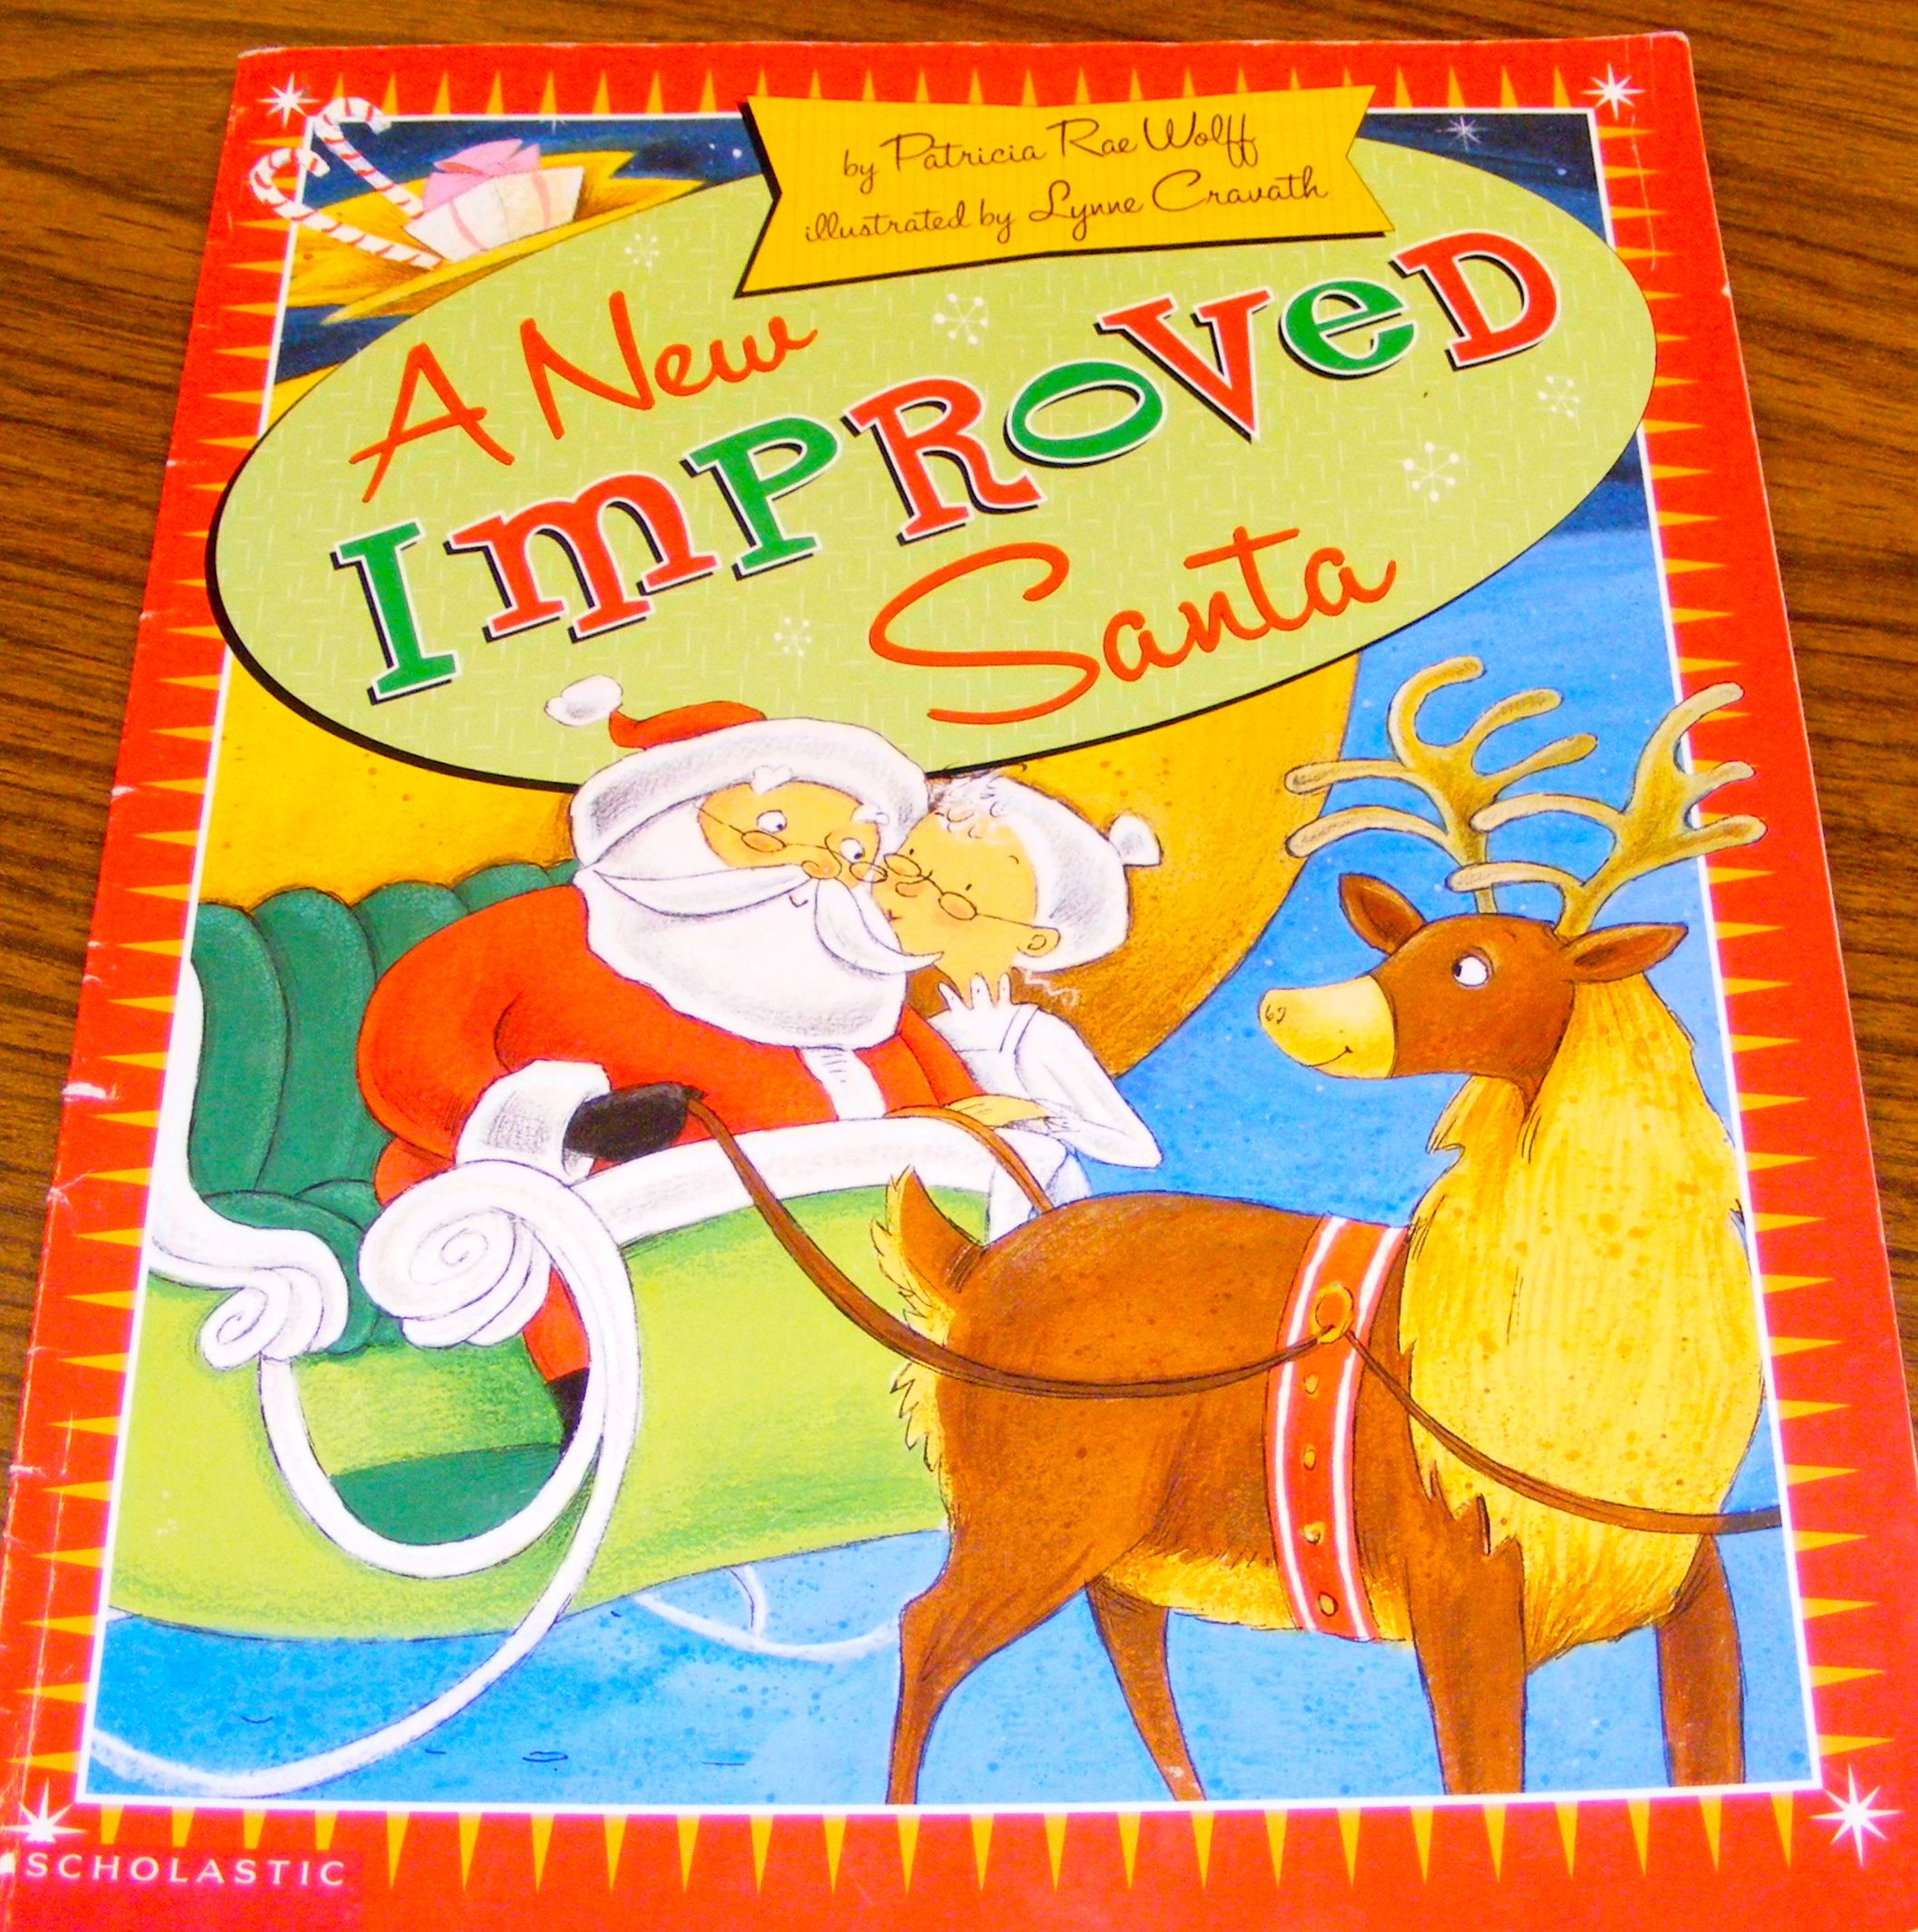 A New Improved Santa (book photo)